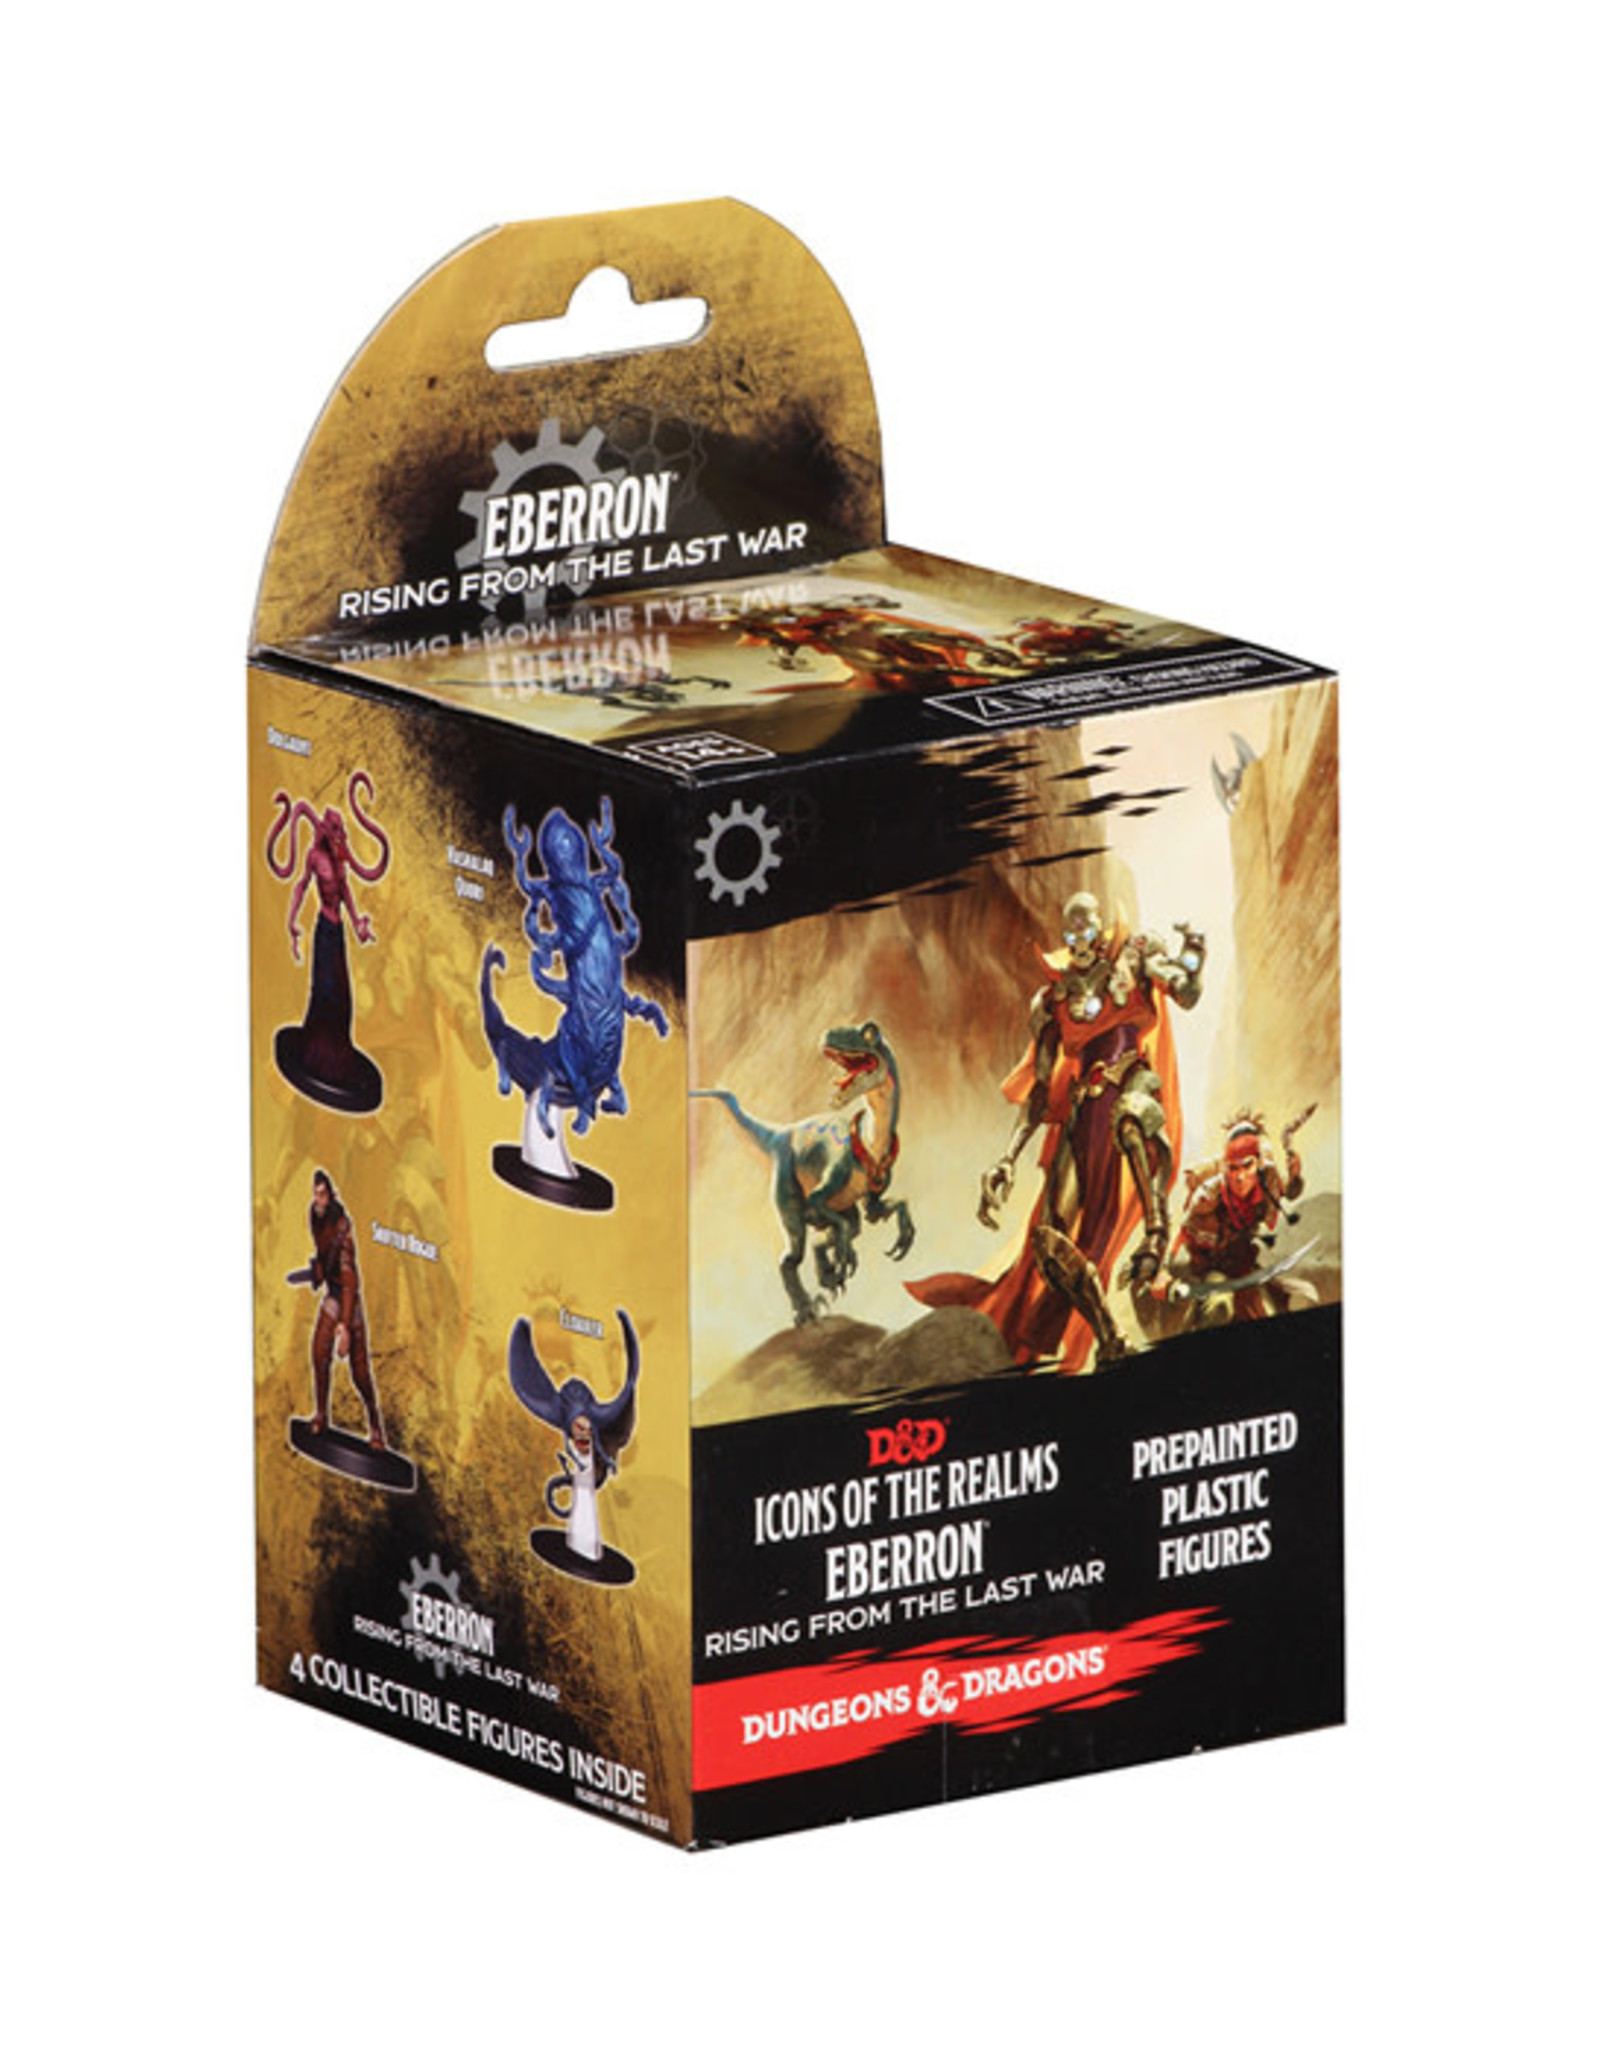 Dungeons & Dragons Dungeons & Dragons: Icons of the Realms - Eberron, Rising from the Last War - Booster Pack